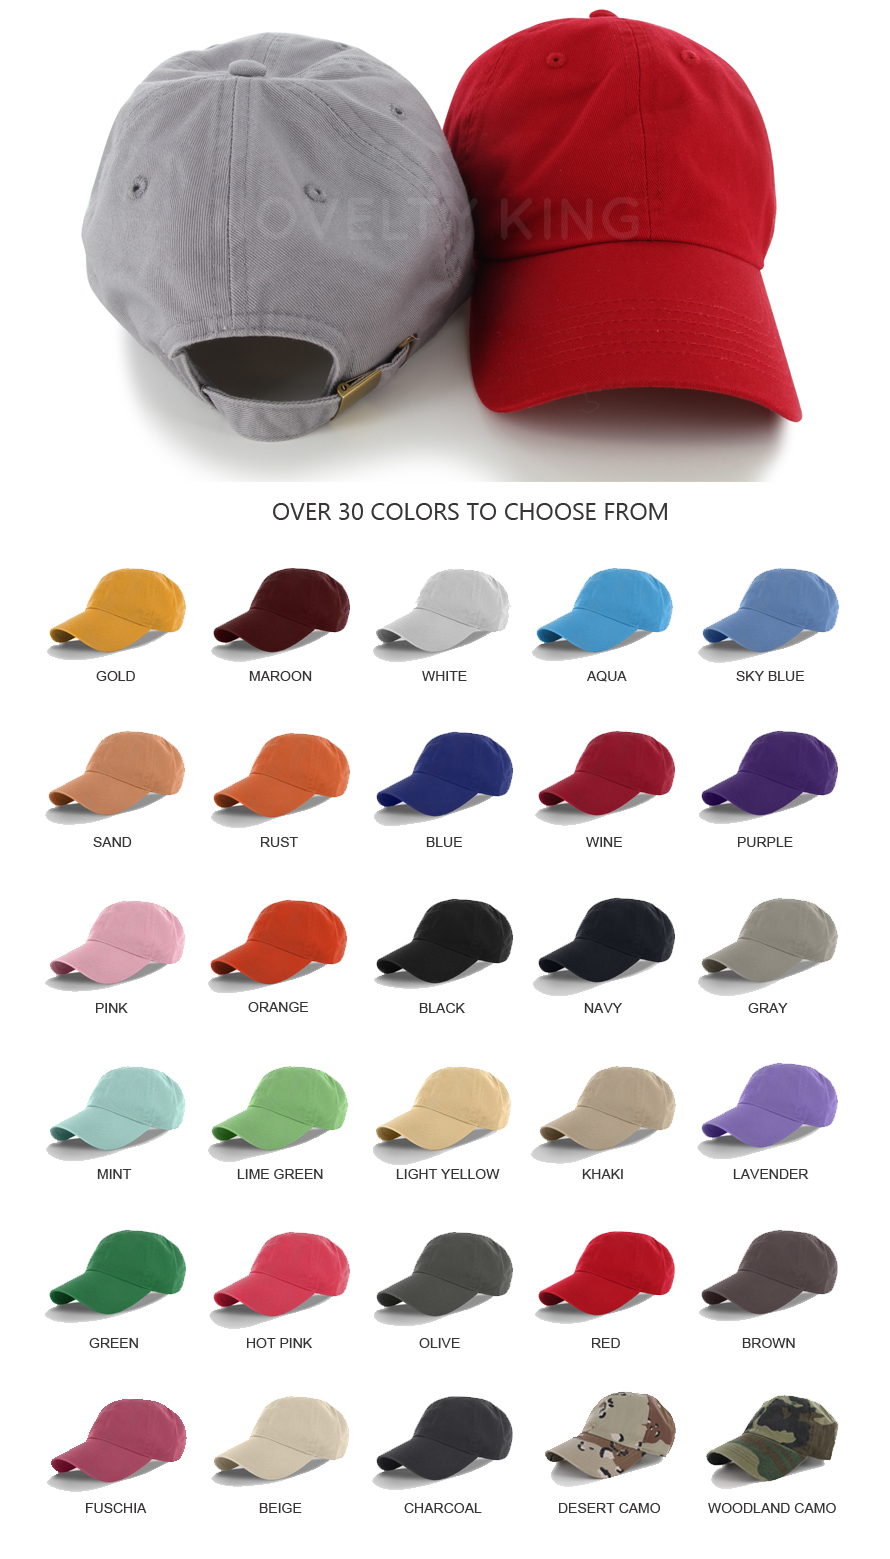 005f50c29ec Cotton Cap Baseball Caps Hat Adjustable Polo Style Washed Plain ...